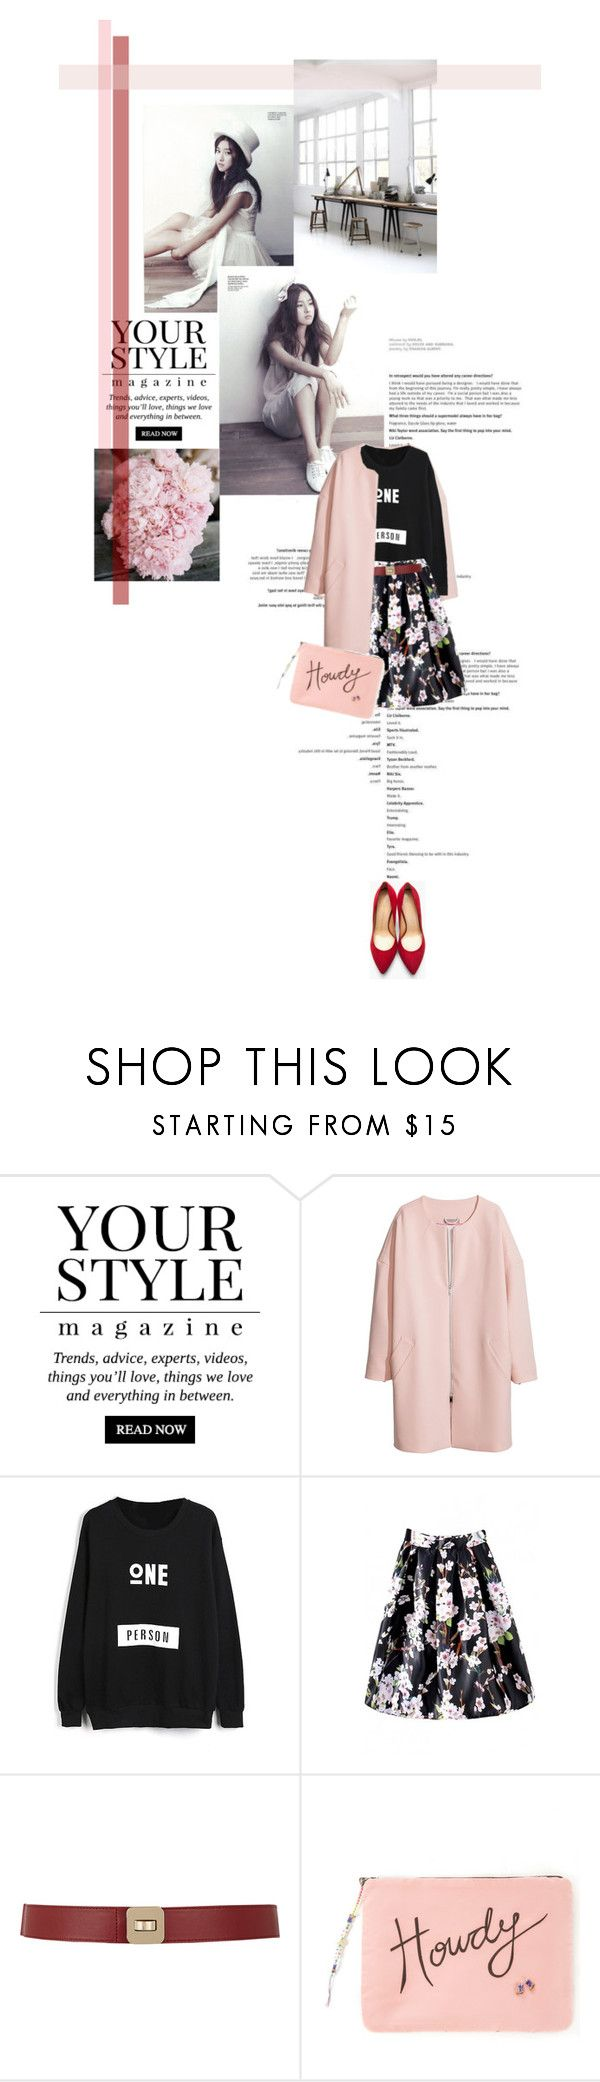 """""""Sweetness"""" by farahhind ❤ liked on Polyvore featuring mode, IDeeen, Pussycat, H&M, Maison Boinet, Venessa Arizaga, Charlotte Olympia, bhalo et bhalo3"""